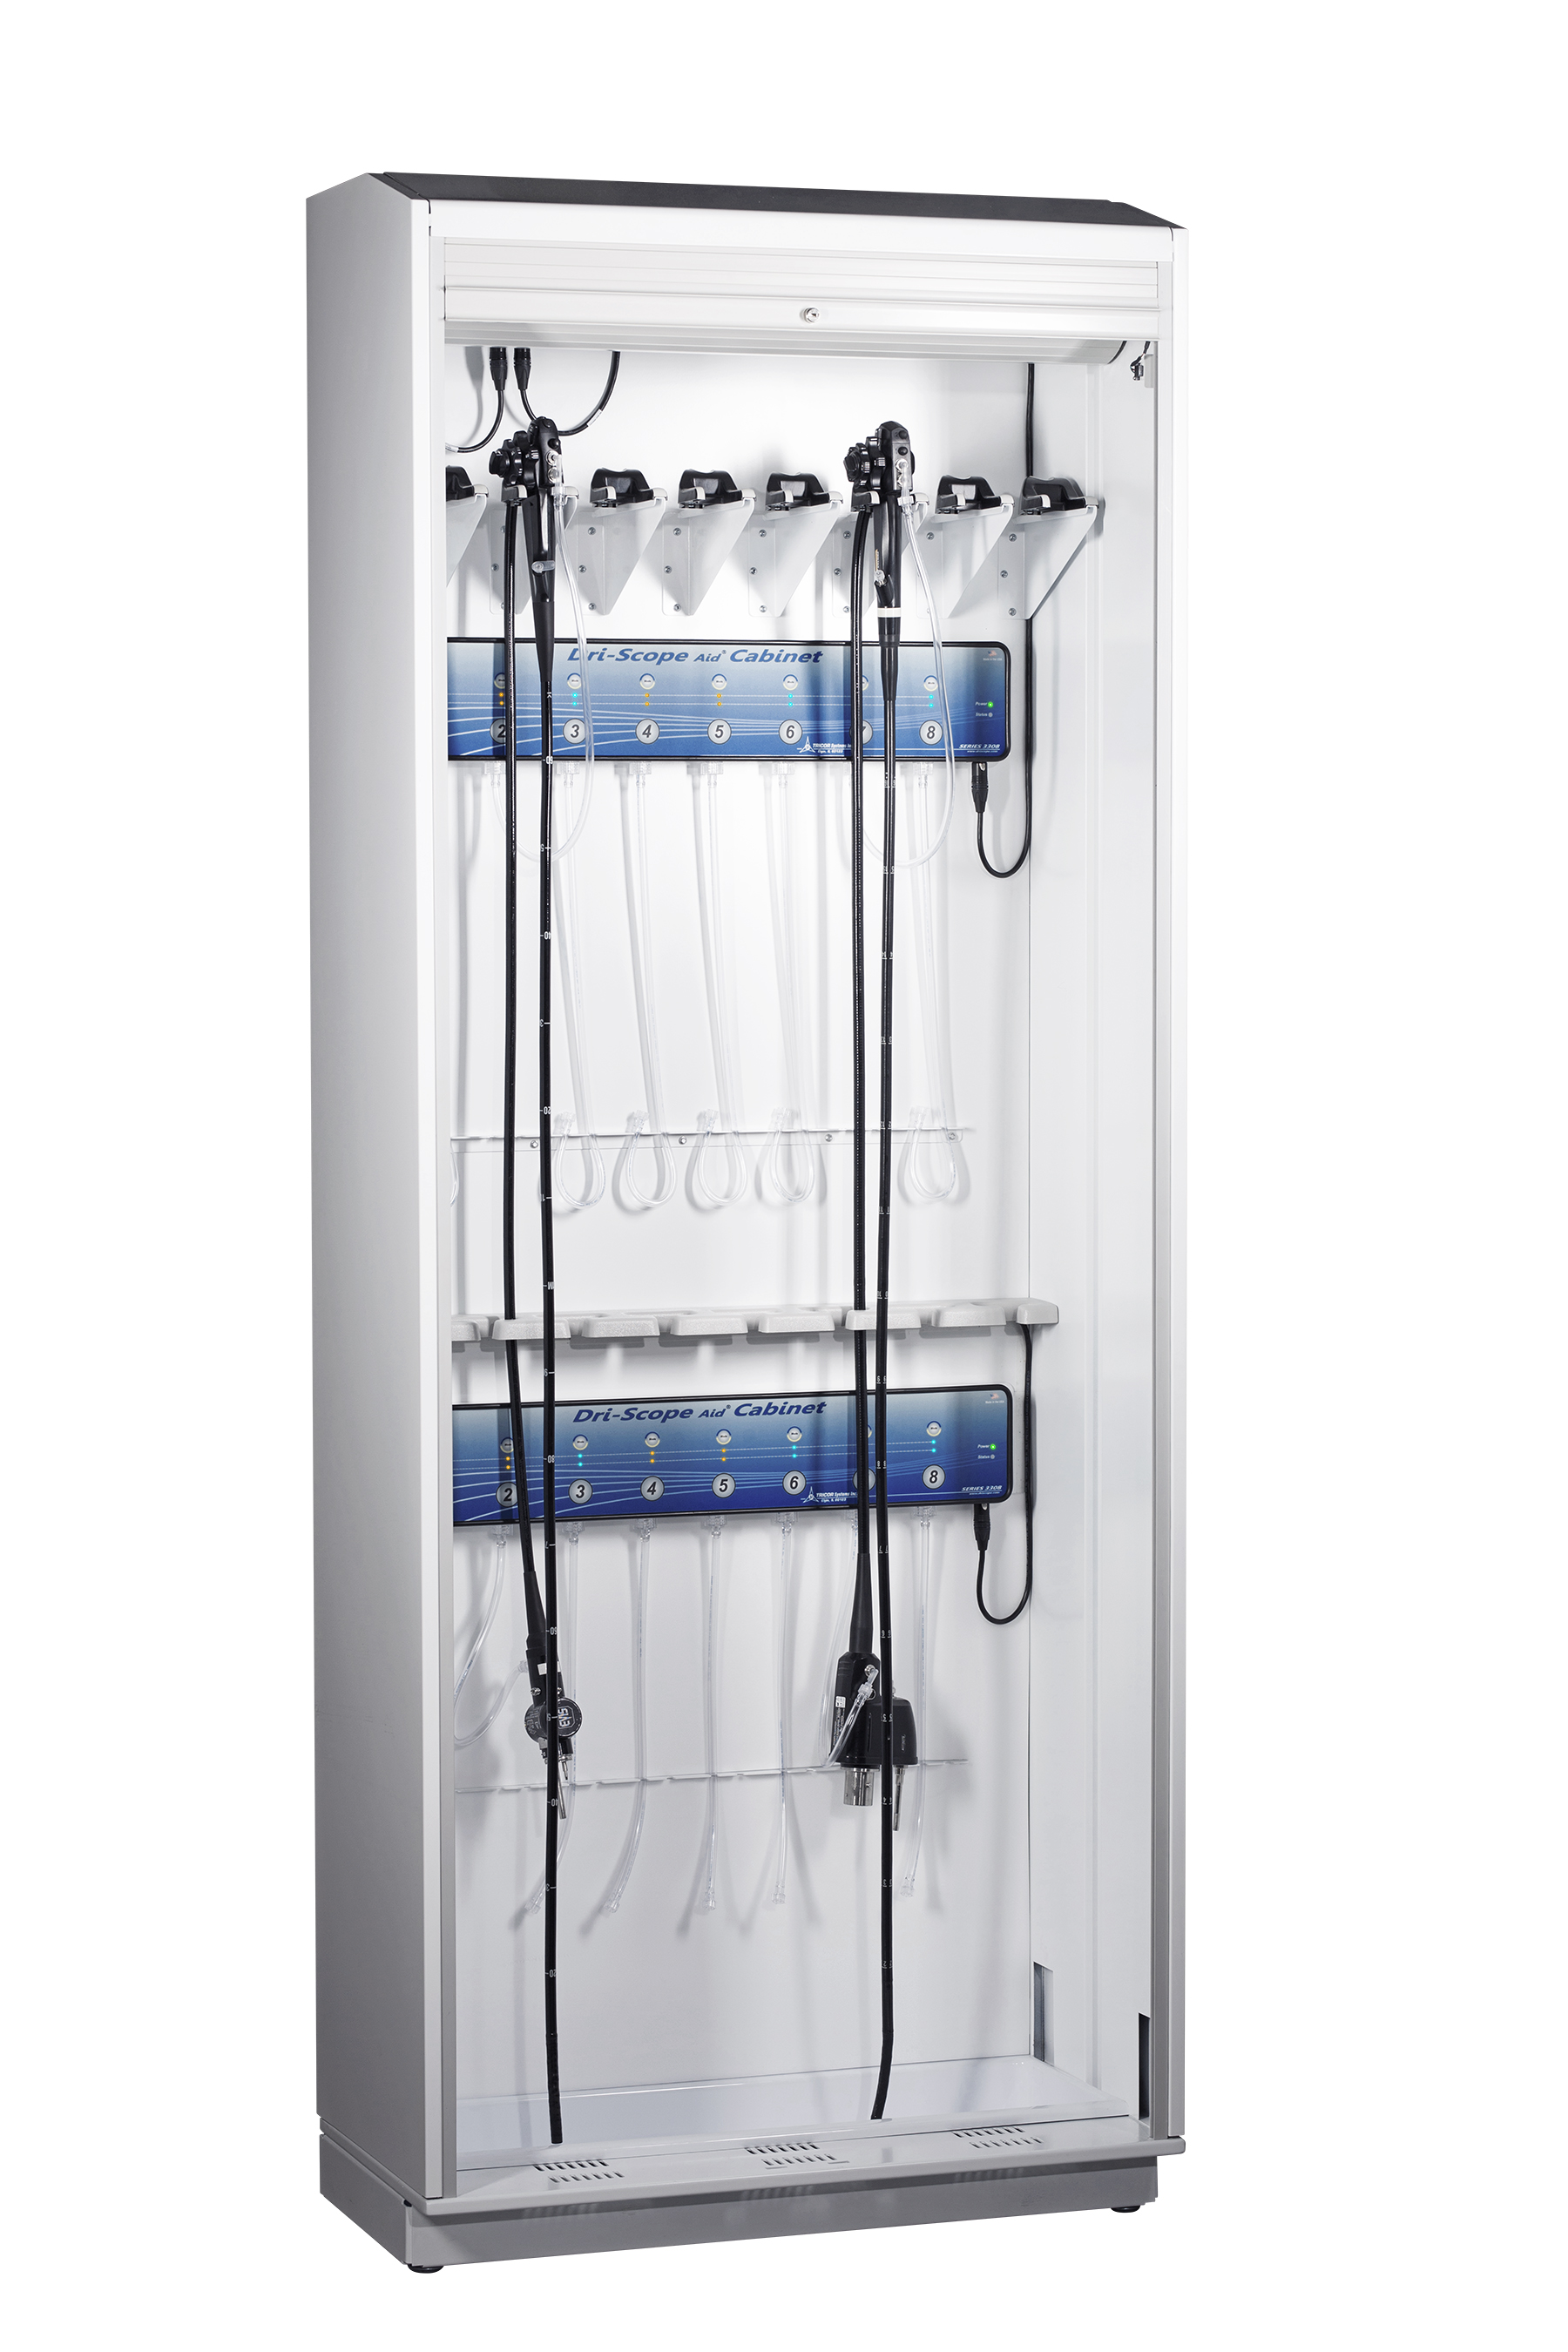 Scope Drying Cabinets ~ Tricor systems inc launches dri scope aid cabinet